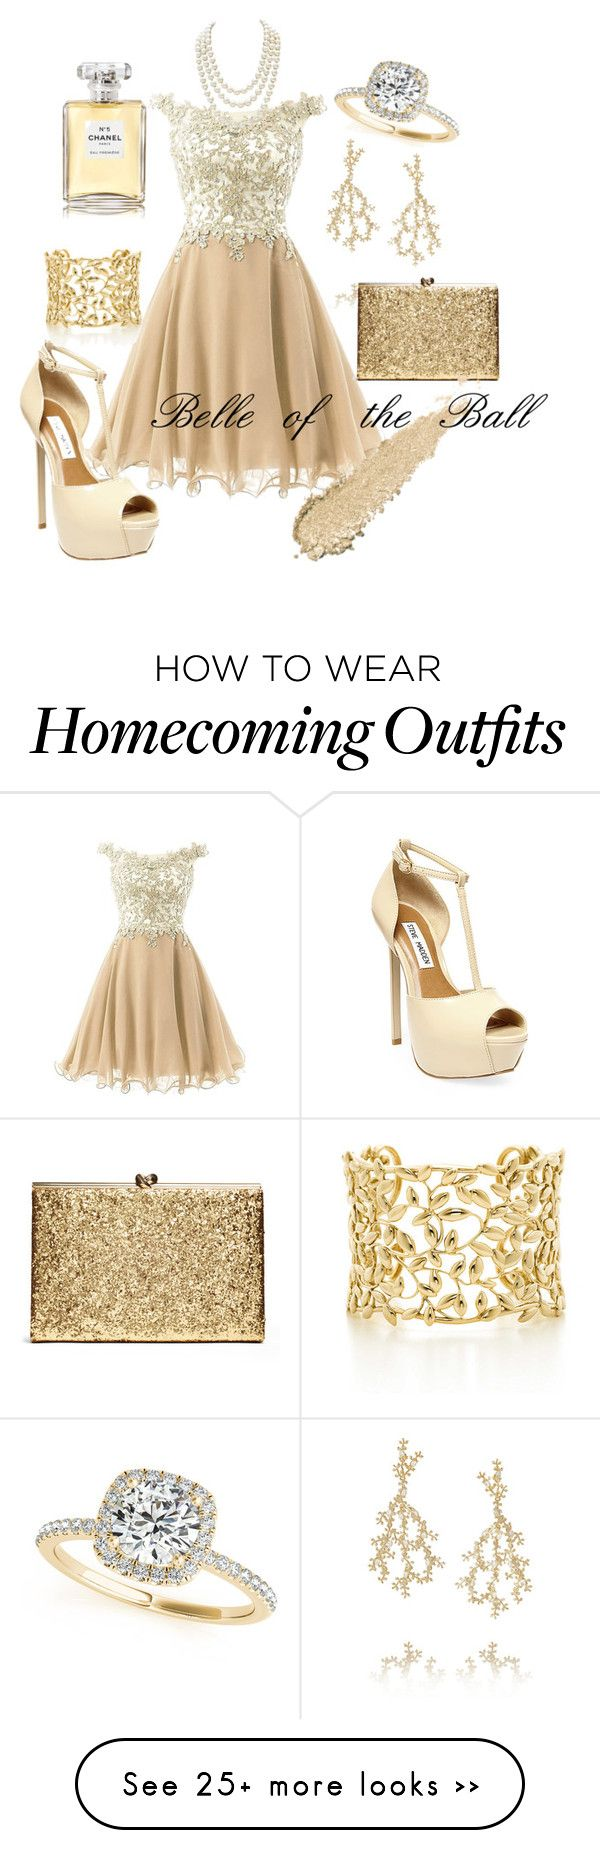 """Bell of the Ball"" by mishcacao on Polyvore featuring Rosantica, Steve Madden, Chanel, Allurez and Paloma Picasso"